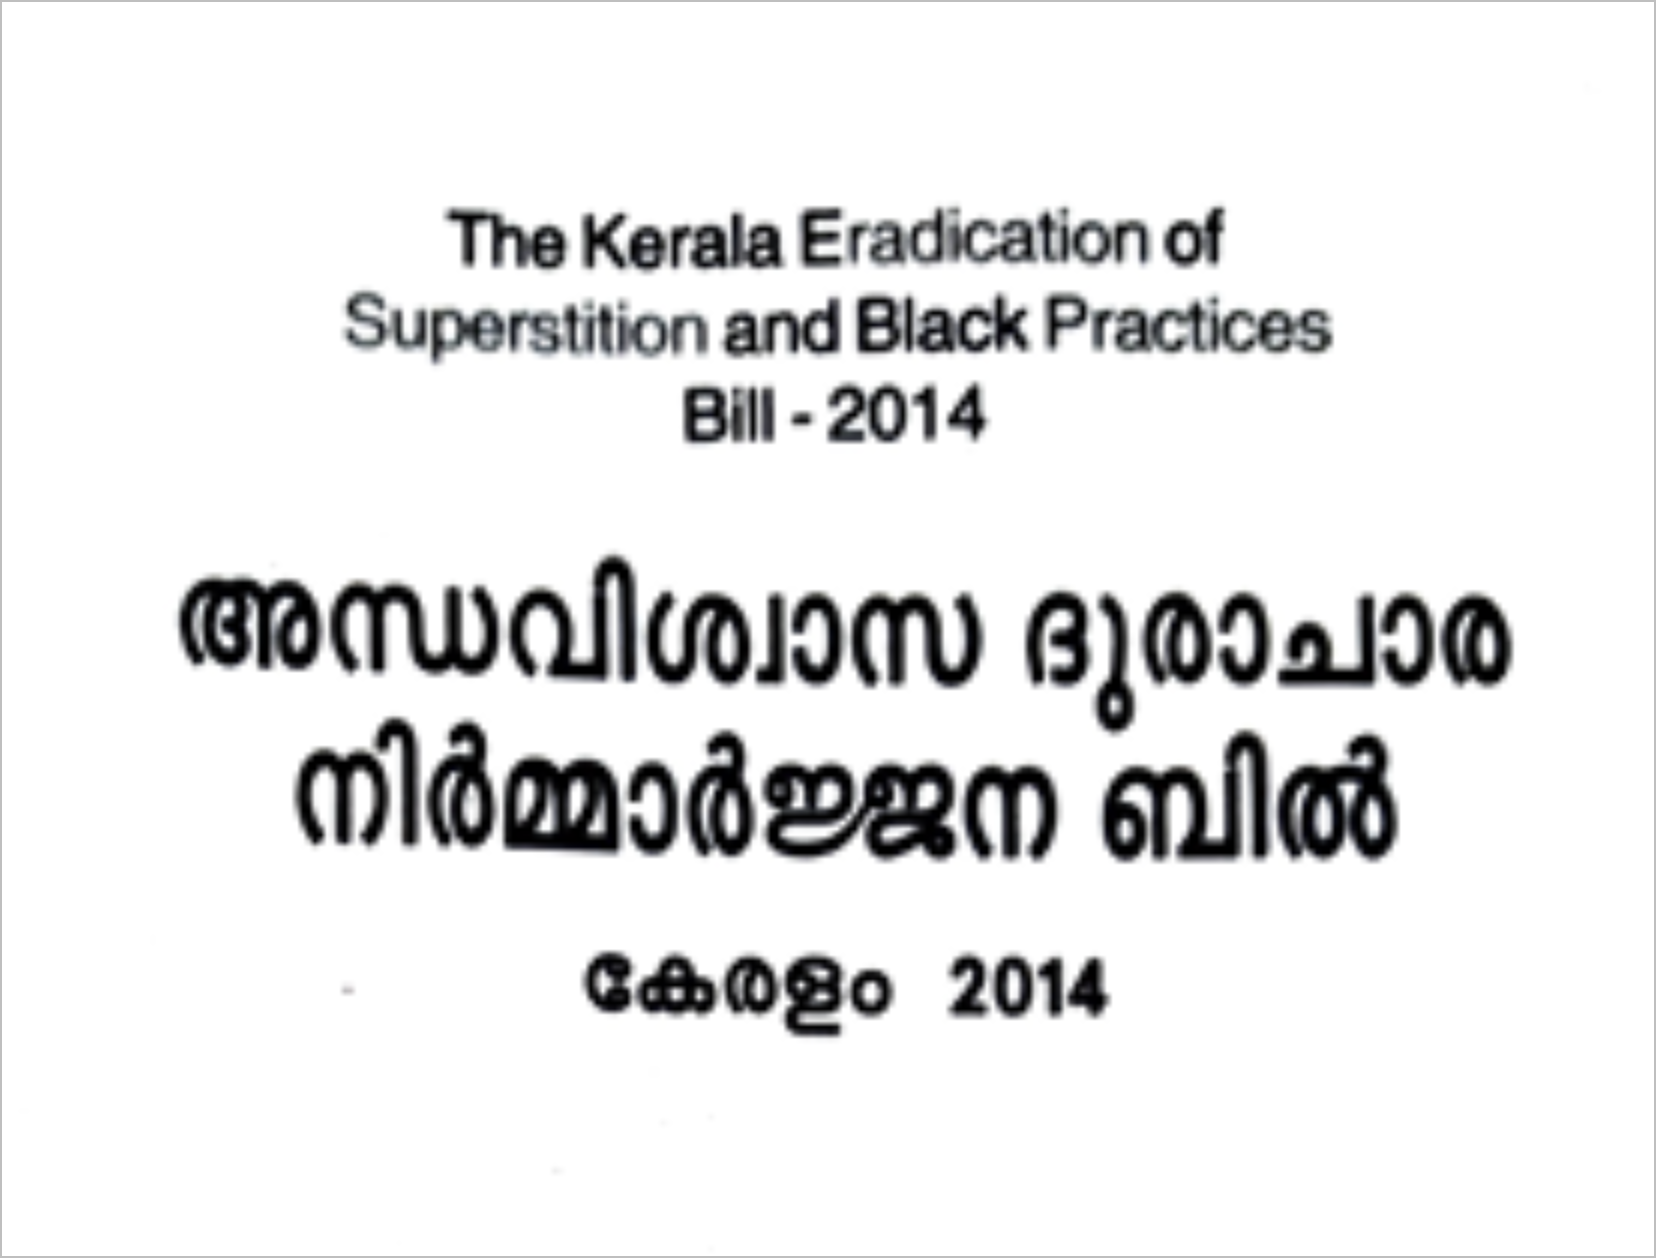 Eradication of Superstitions and Black Practices Bill